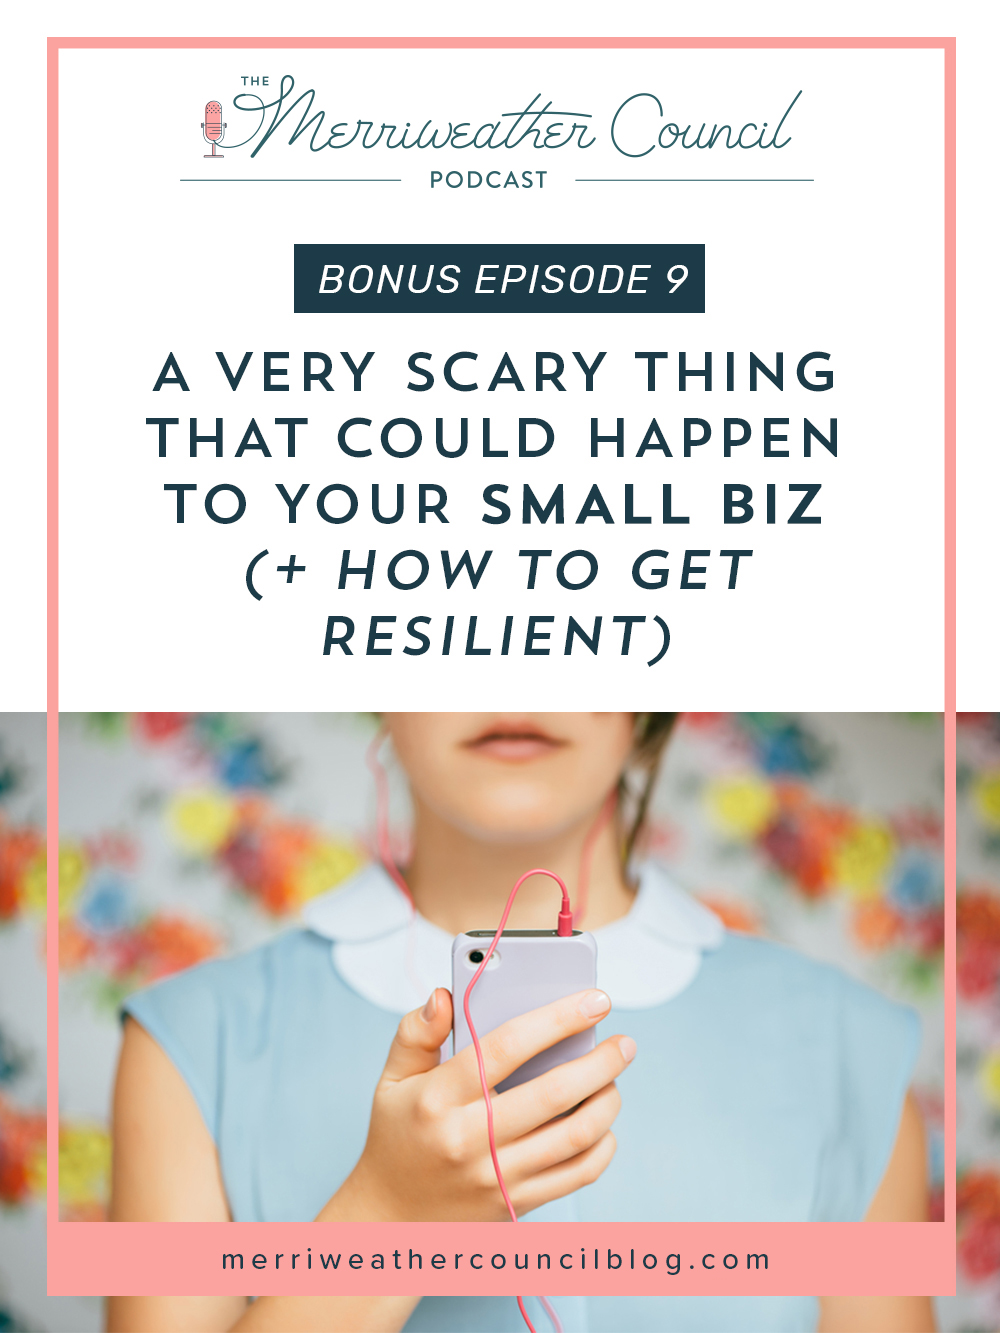 a very scary reality for small biz owners and how to build up resilience | the merriweather council podcast